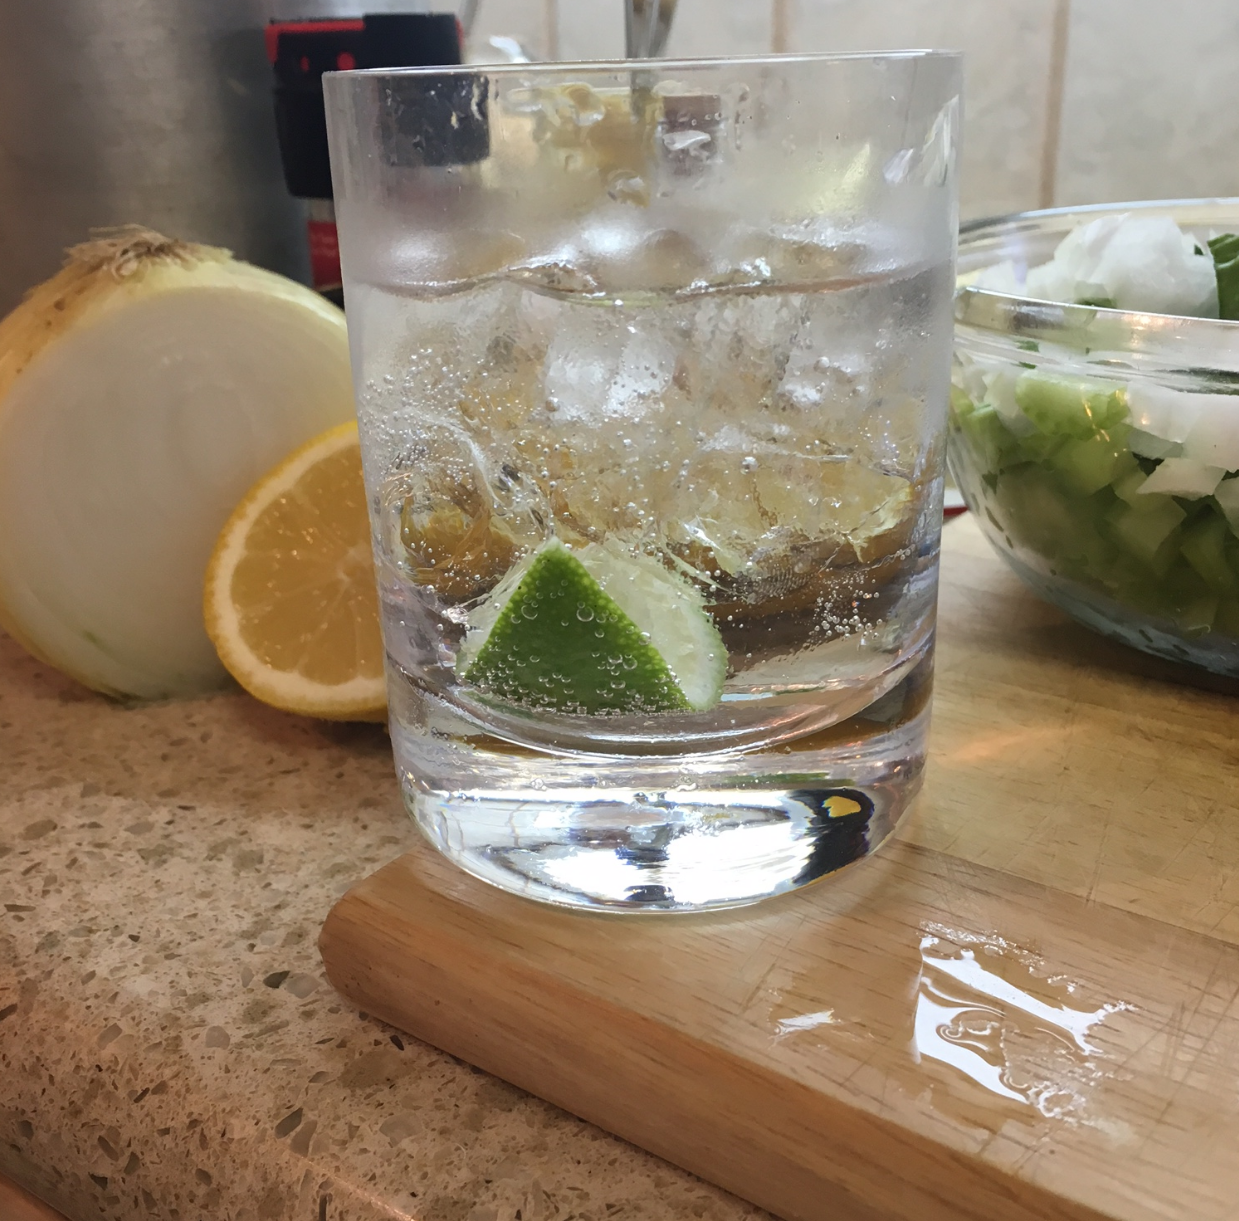 Of course, there may have been some drinking involved while cooking. A vodka tonic certainly helped pass the time while doing all that chopping!